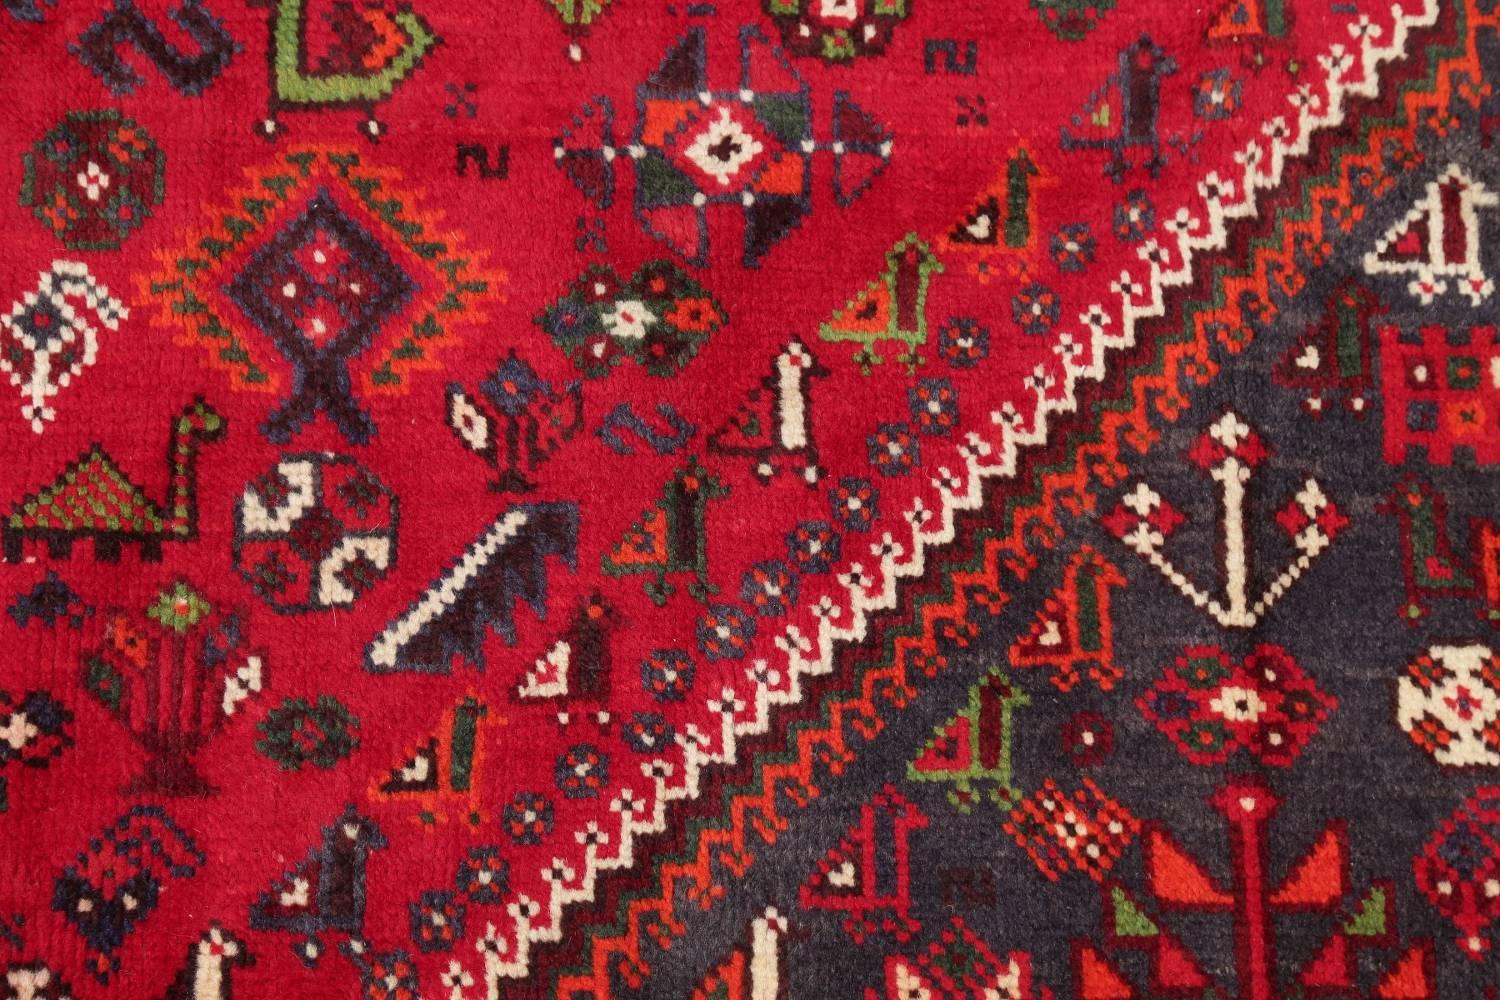 One-of-a-Kind Antique Tribal Shiraz Persian Hand-Knotted 7x10 Wool Area Rug image 19